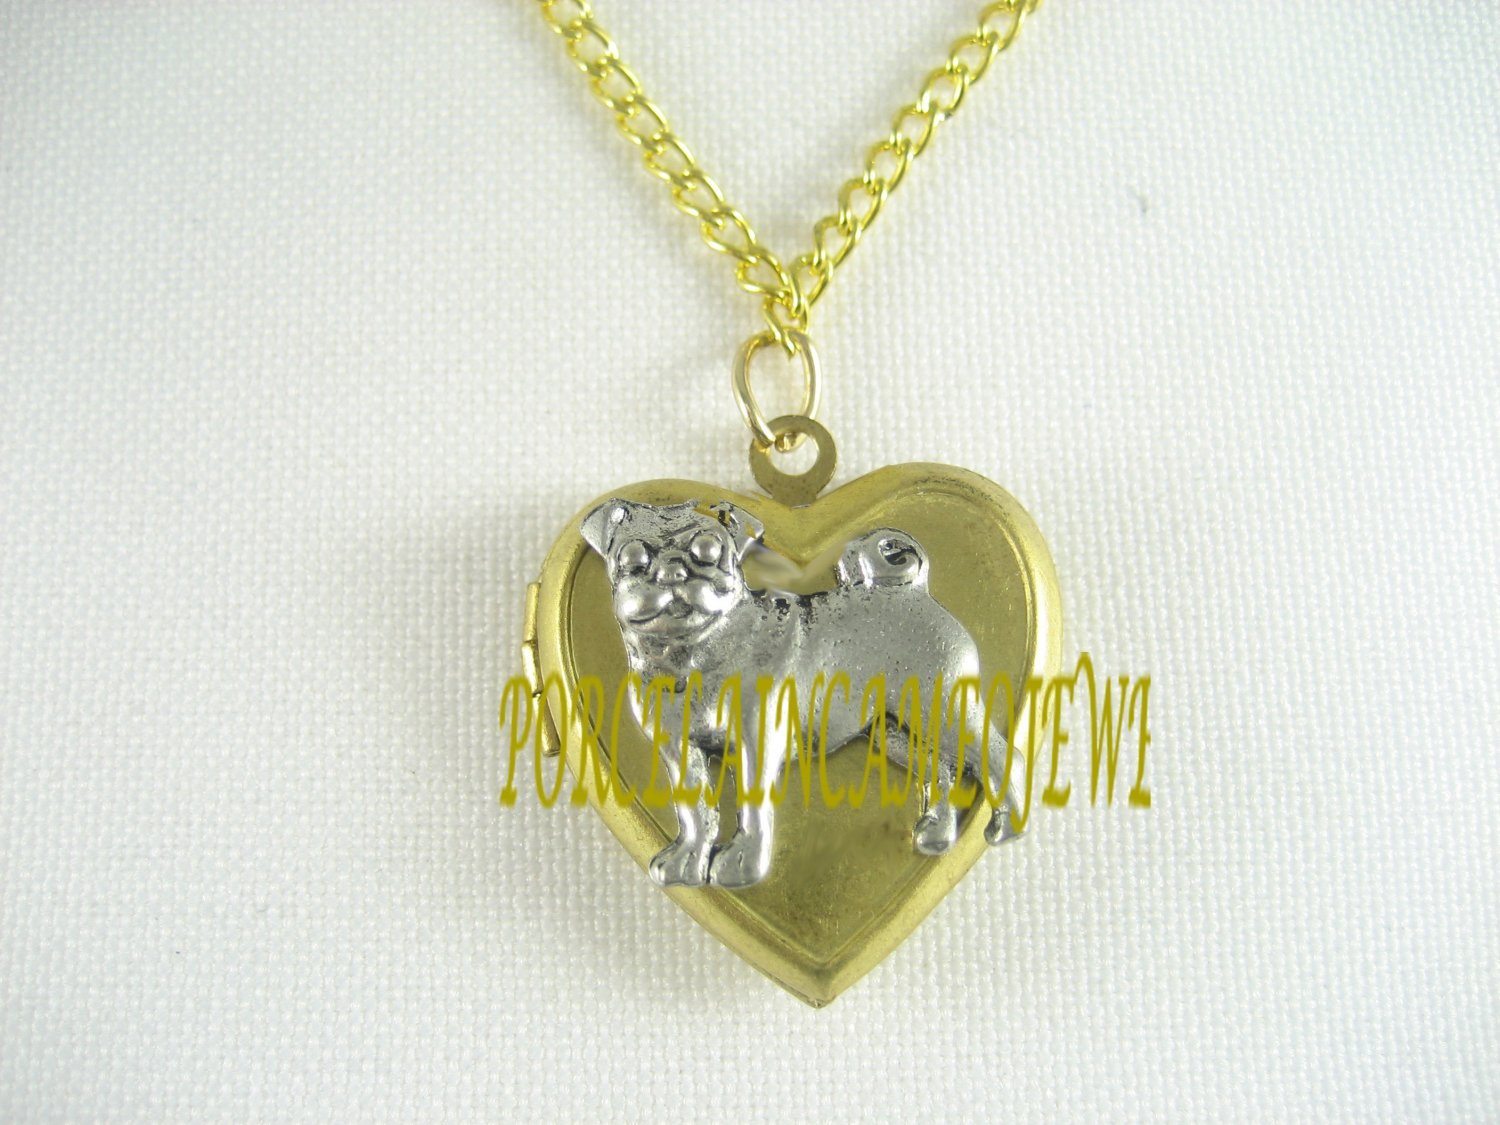 2 TONE PUG DOG VINTAGE ANTIQUE HEART LOCKET NECKLACE